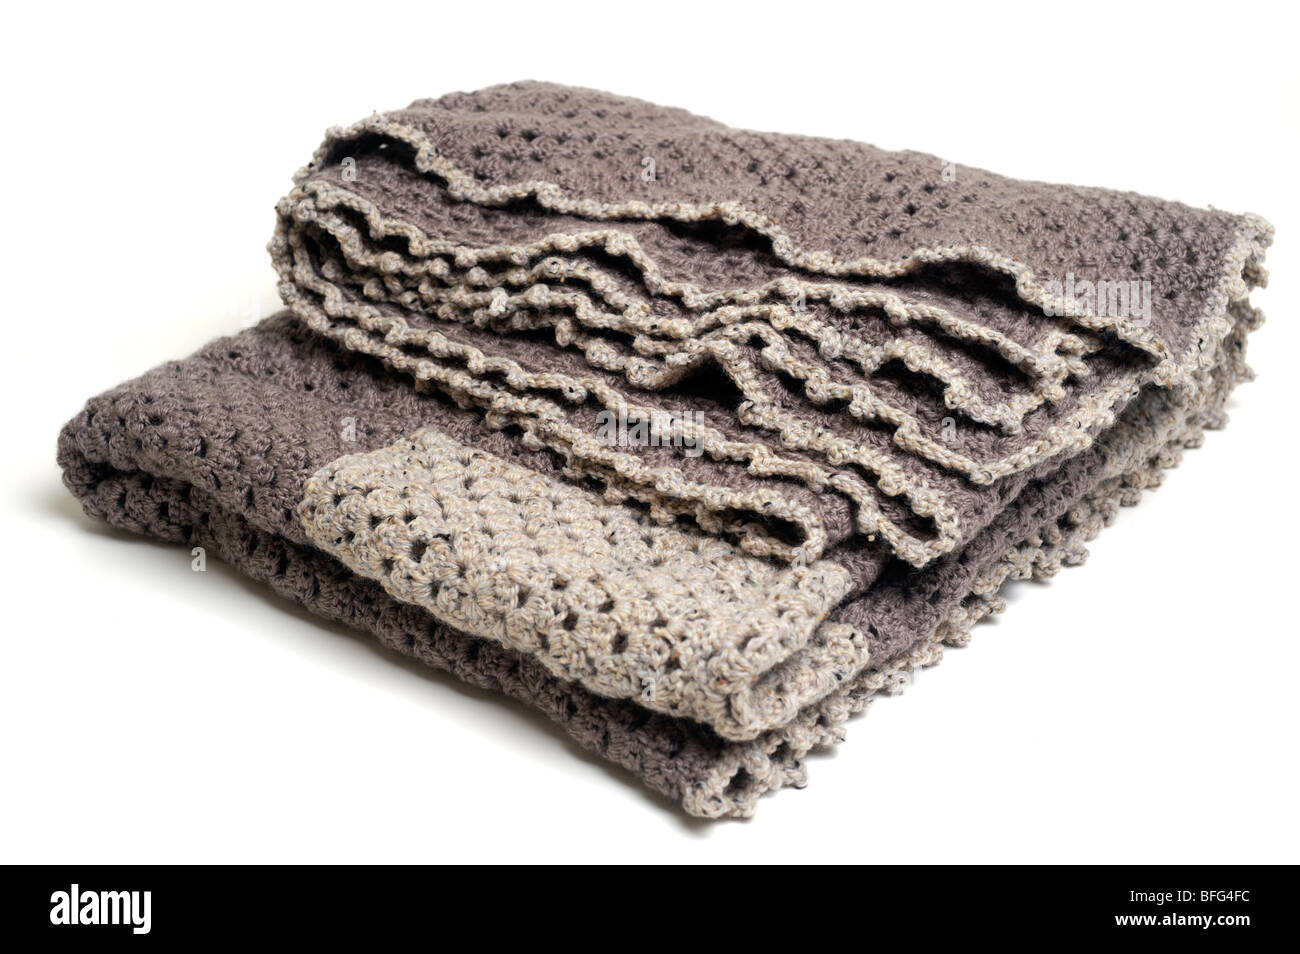 Brown and beige coloured crocheted blanket - Stock Image